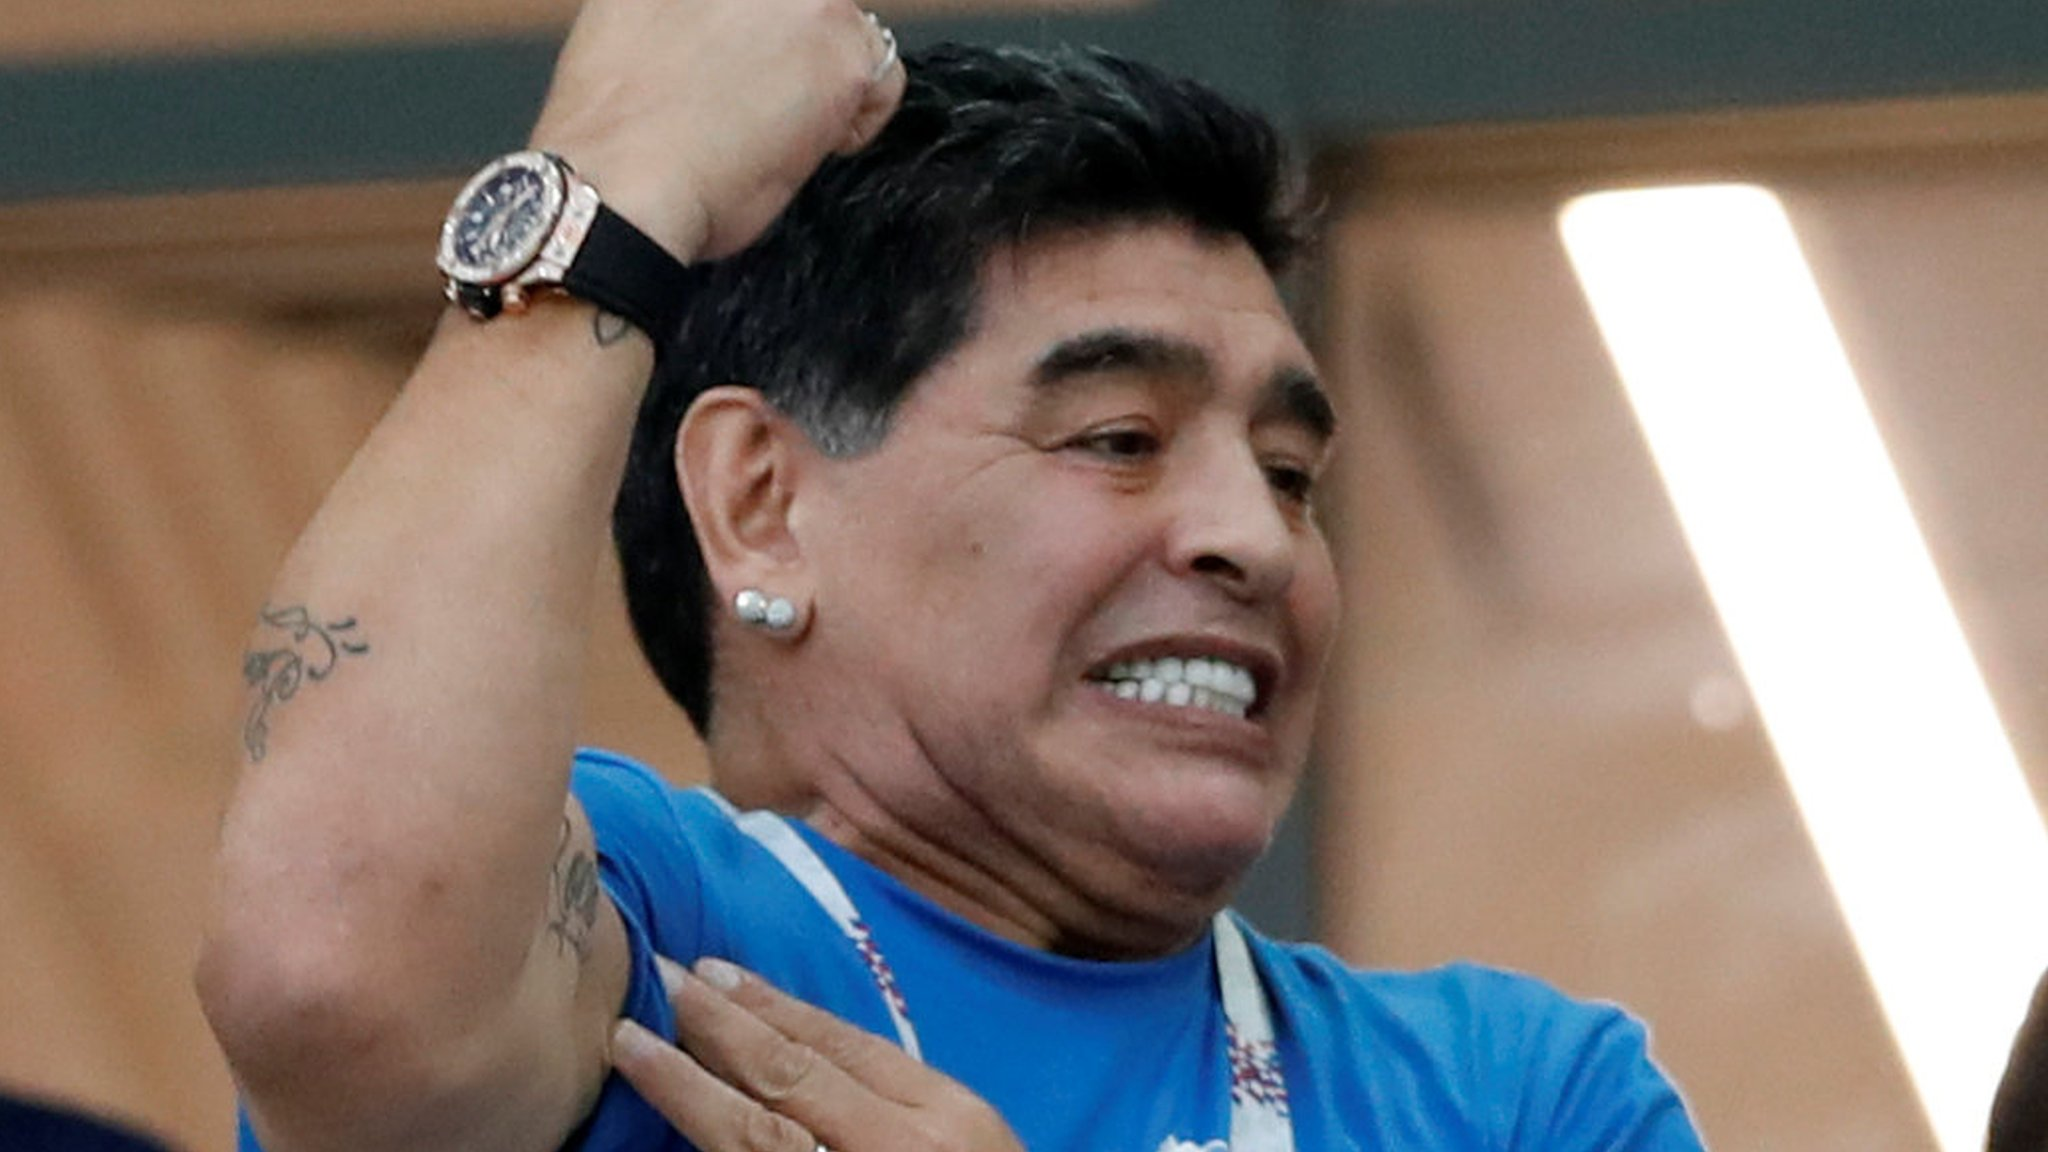 World Cup 2018: Diego Maradona wants to meet Argentina players after Croatia shock